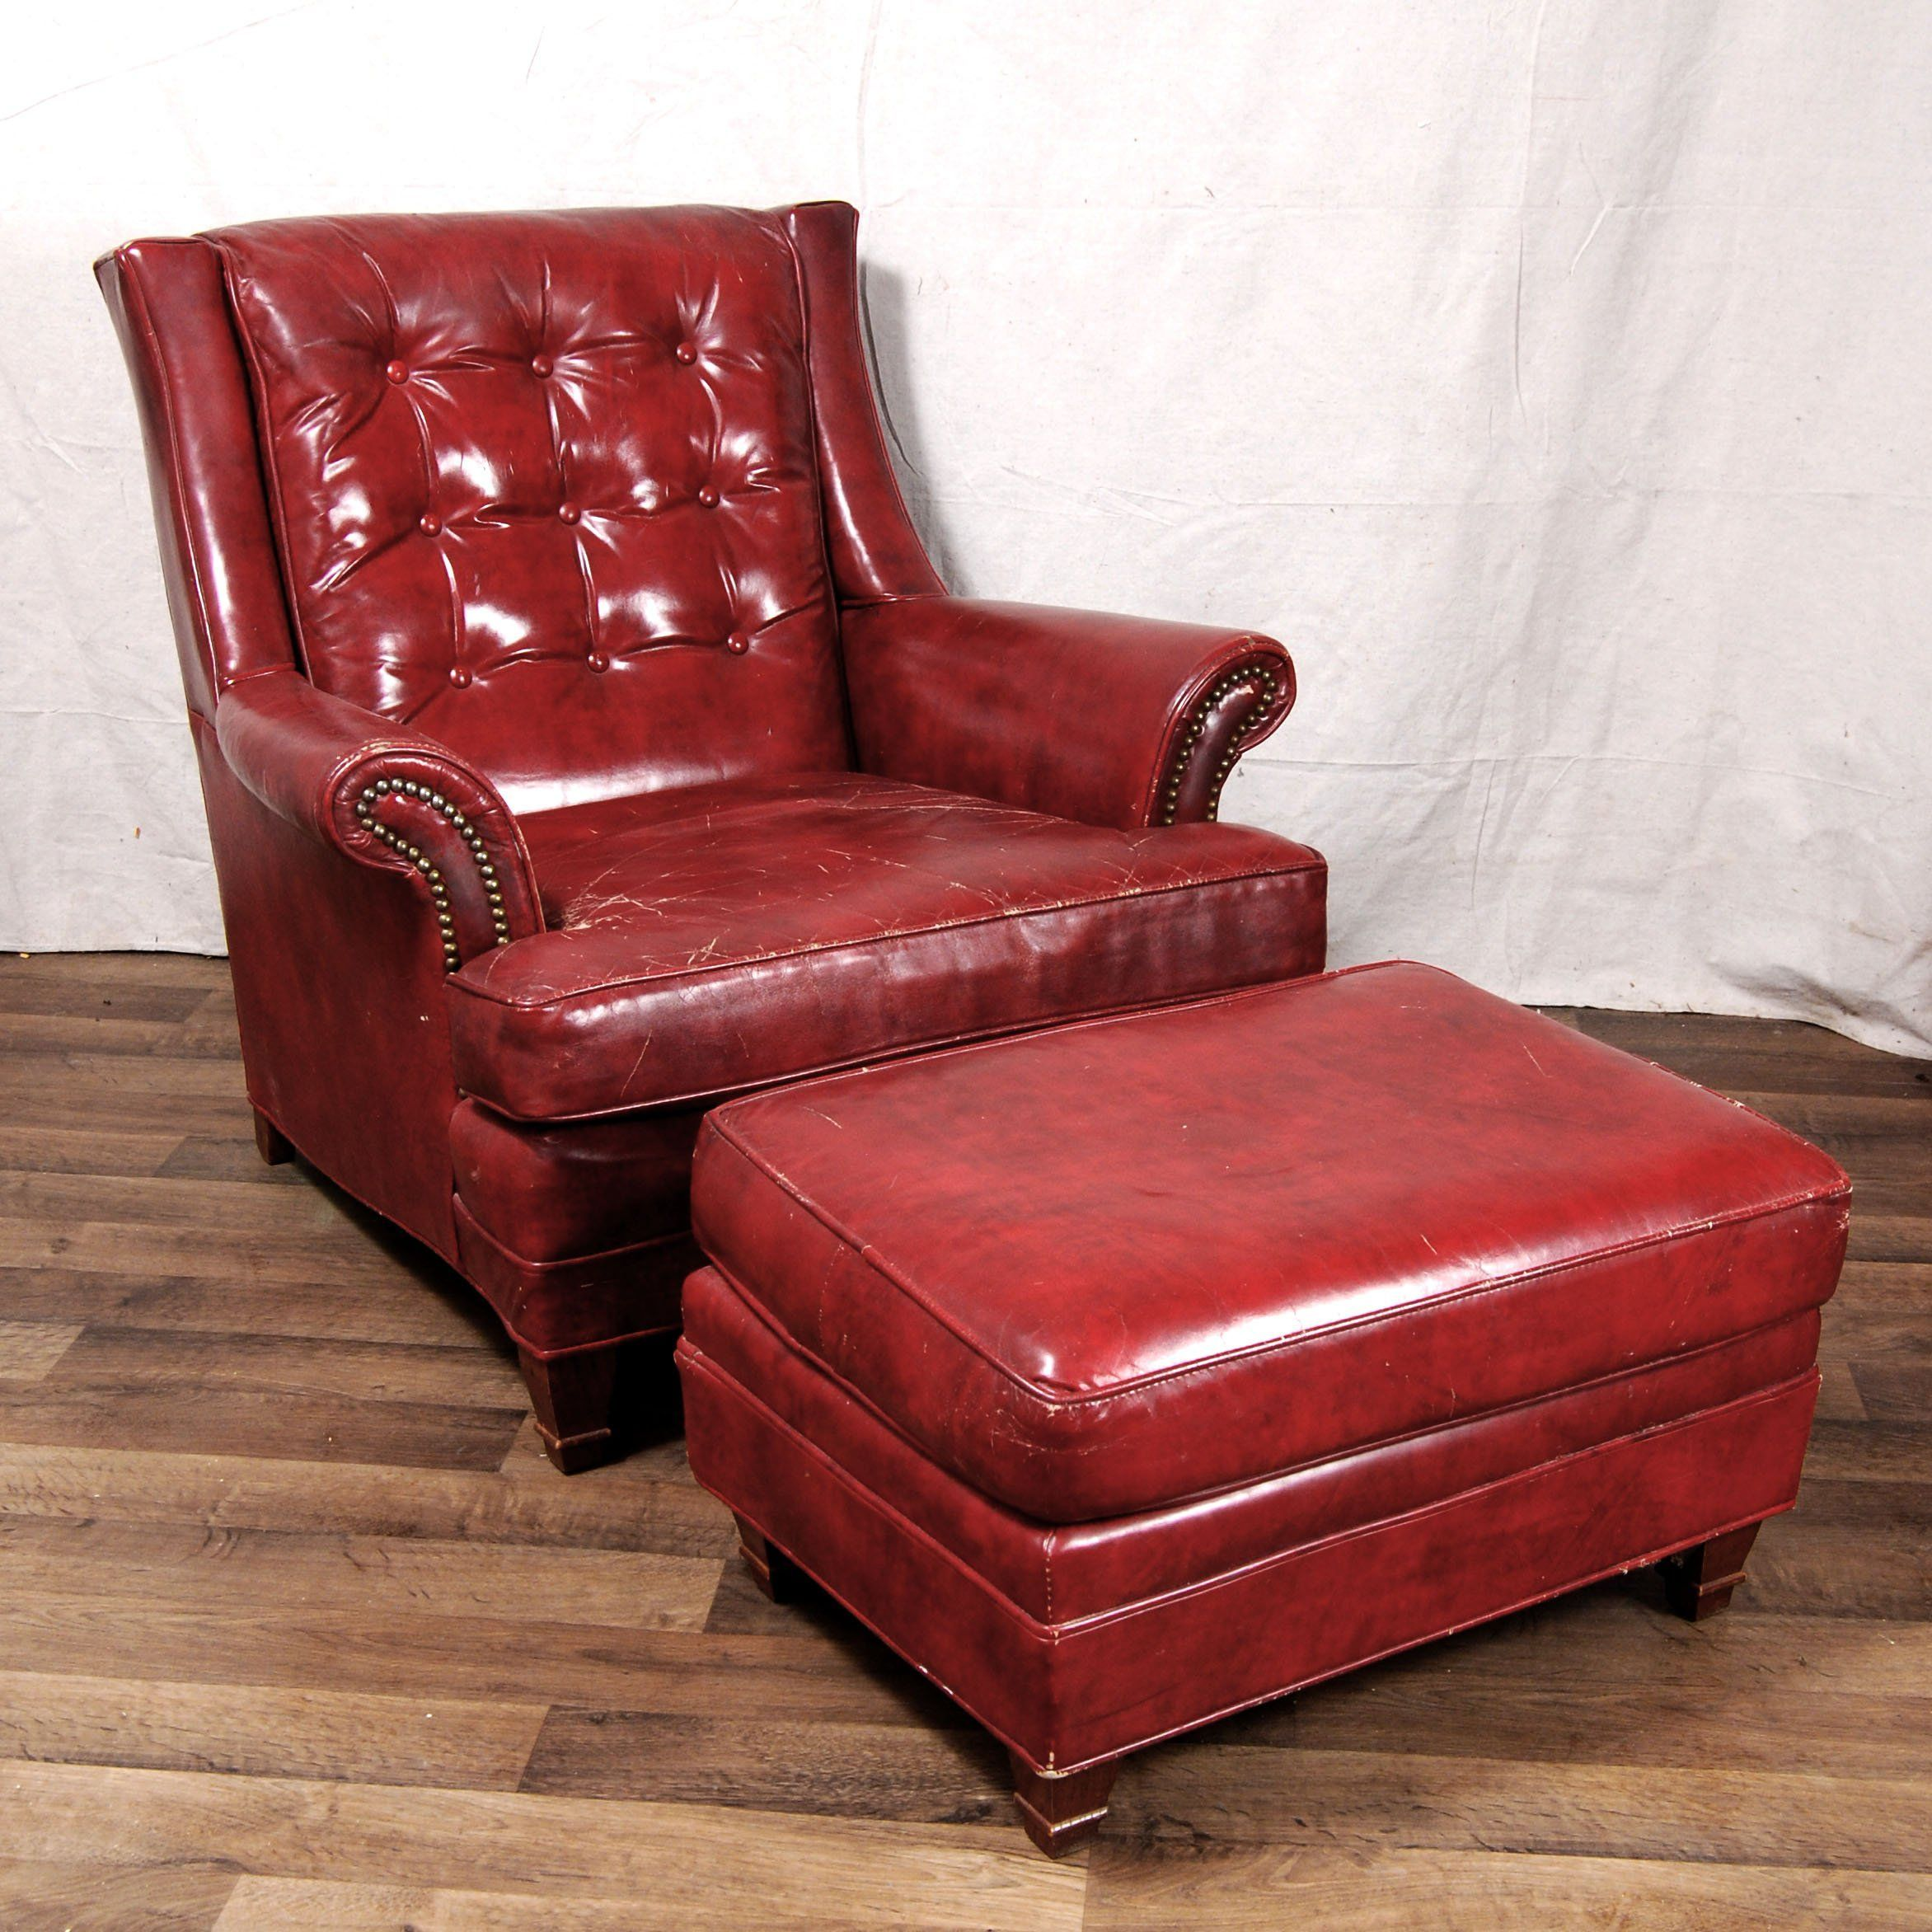 Leather Chair And Ottoman LeatherChair Chair and ottoman